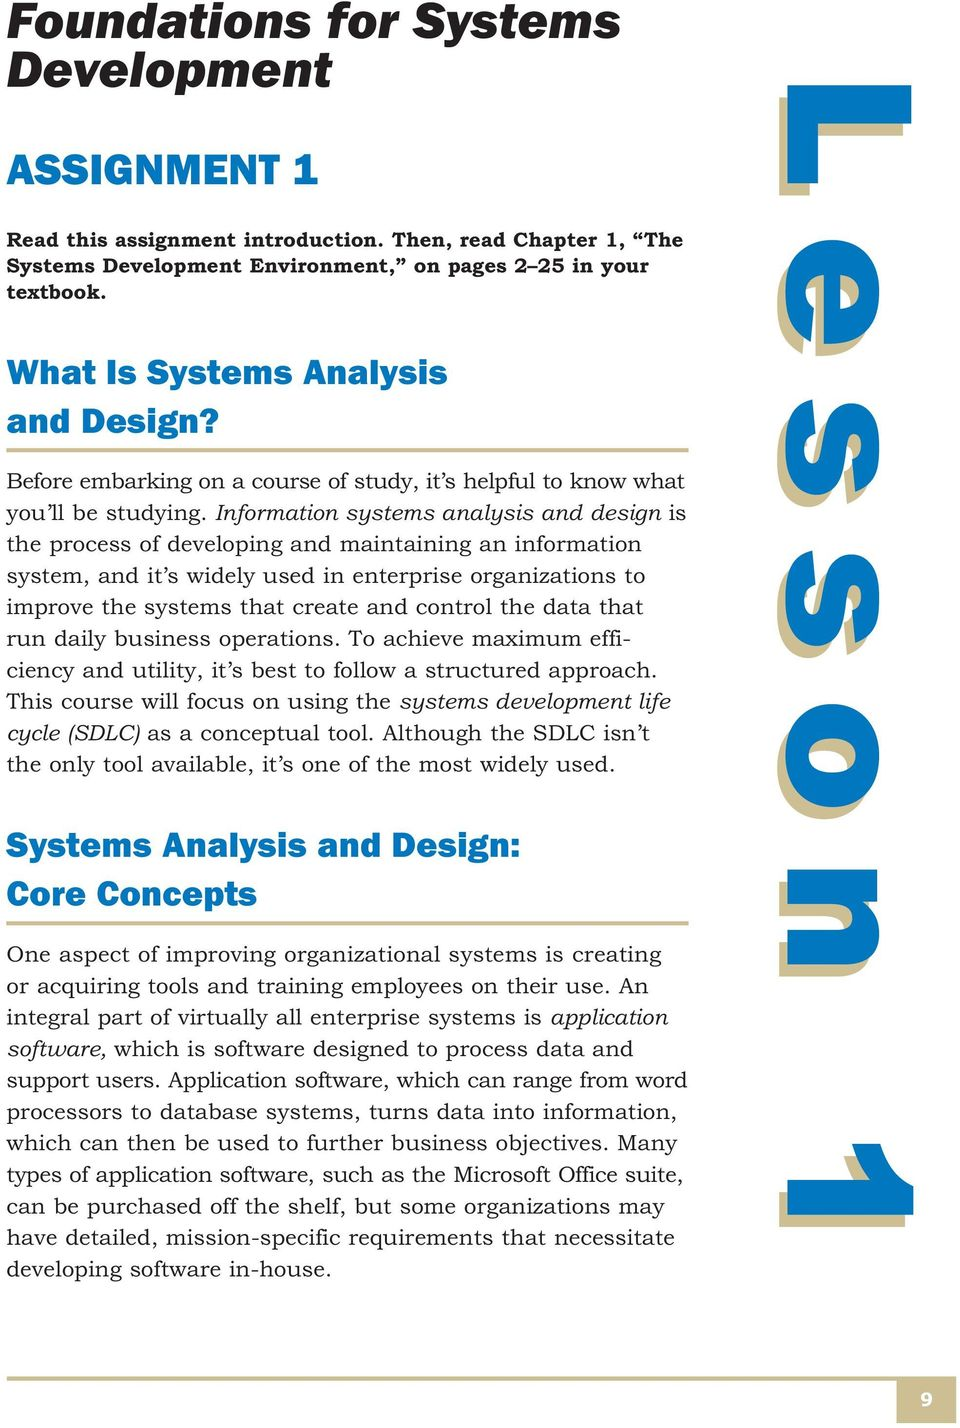 Information systems analysis and design is the process of developing and maintaining an information system, and it s widely used in enterprise organizations to improve the systems that create and